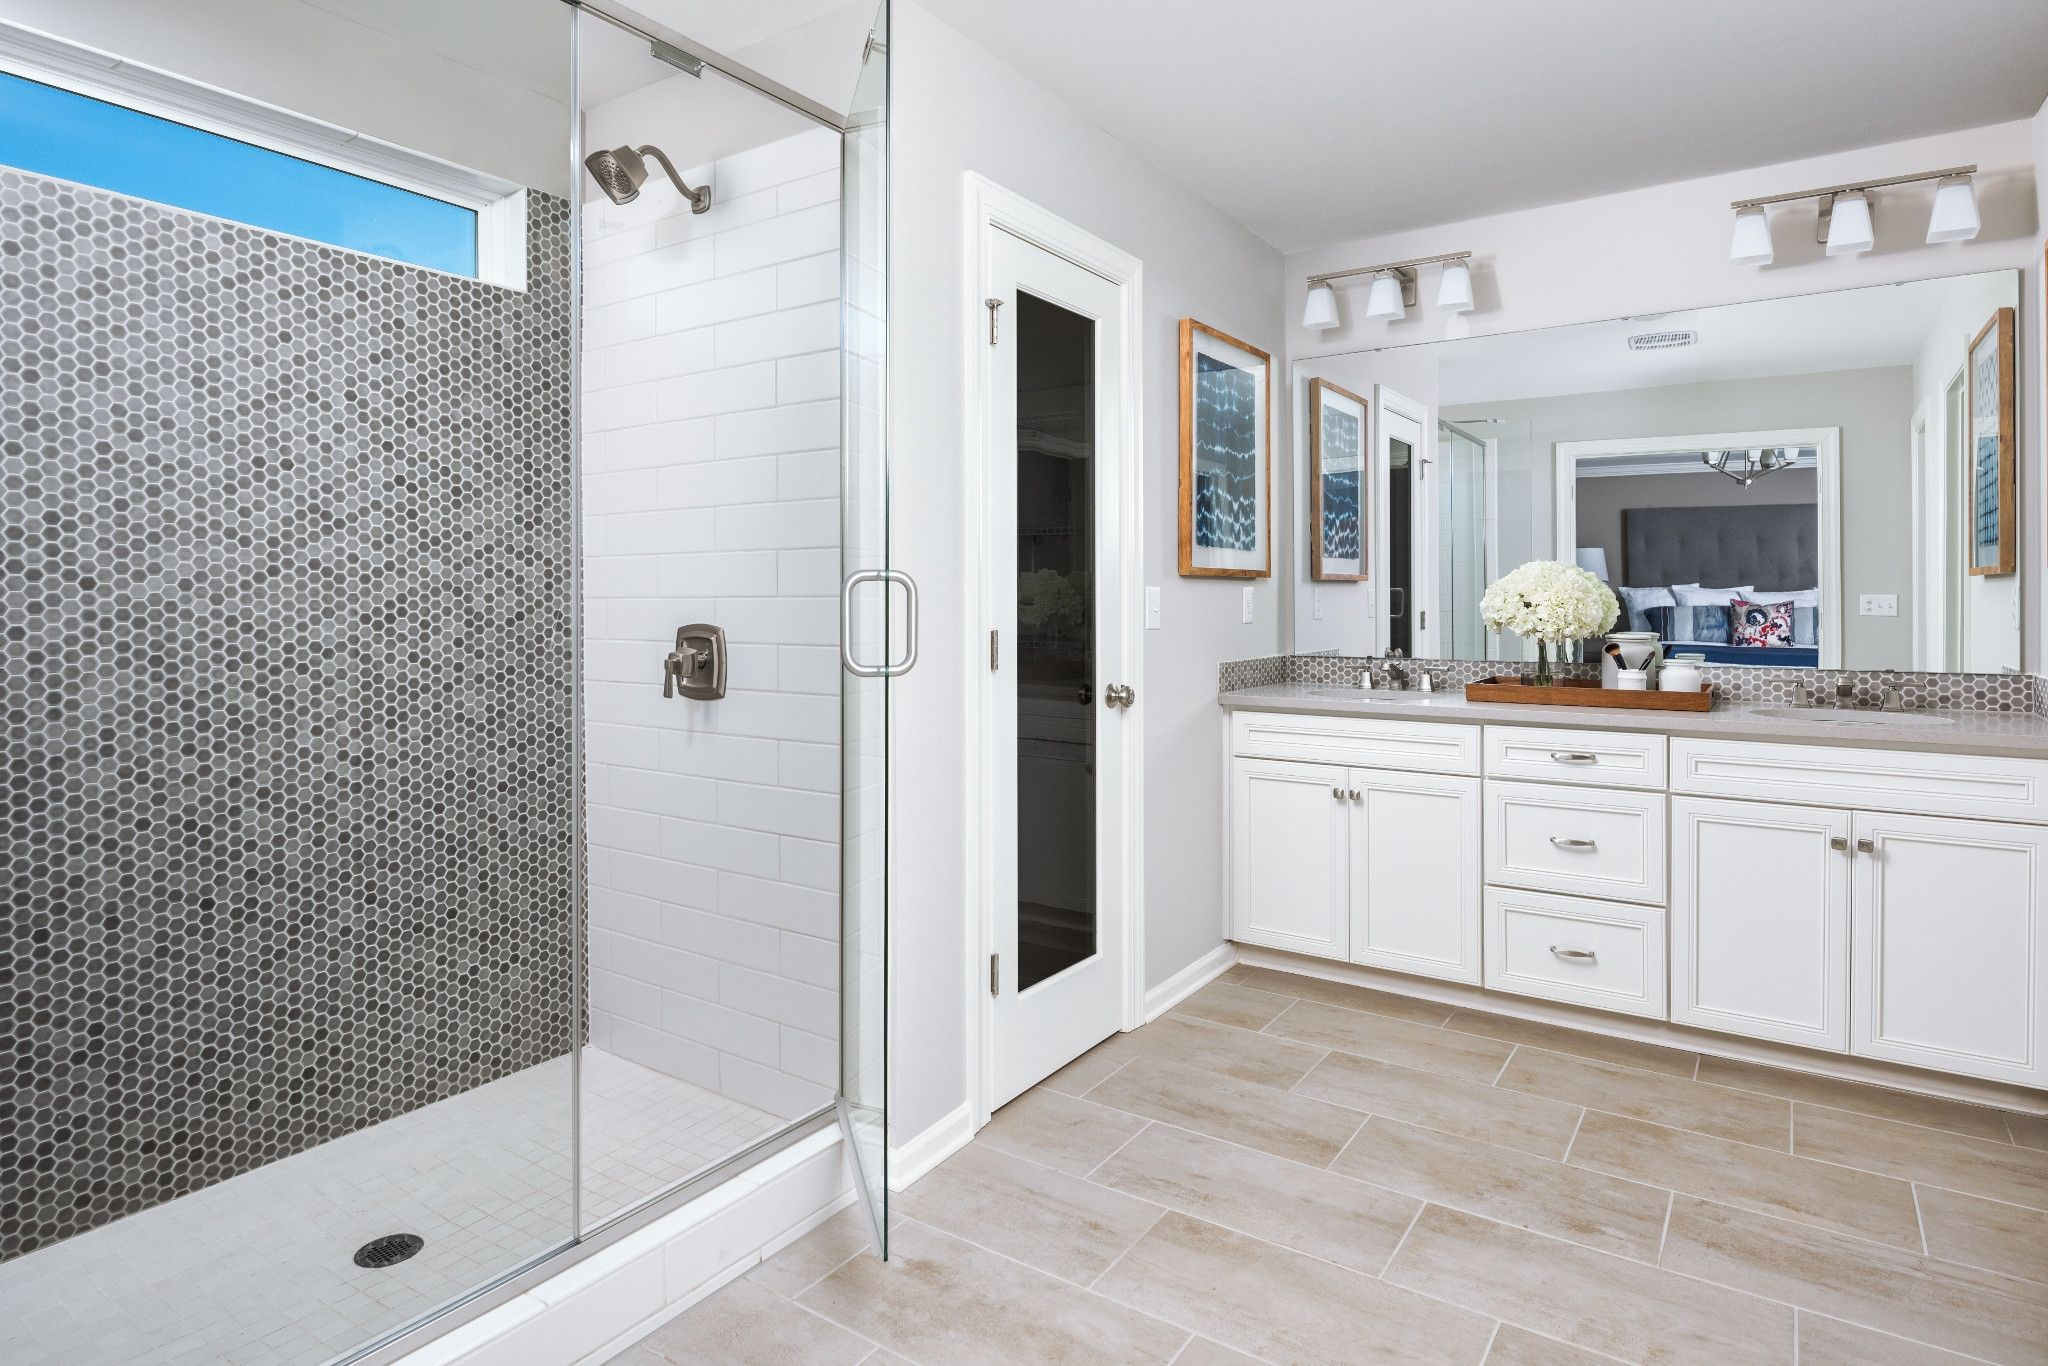 Bathroom-in-Delaney-at-Sagewood-in-Matthews